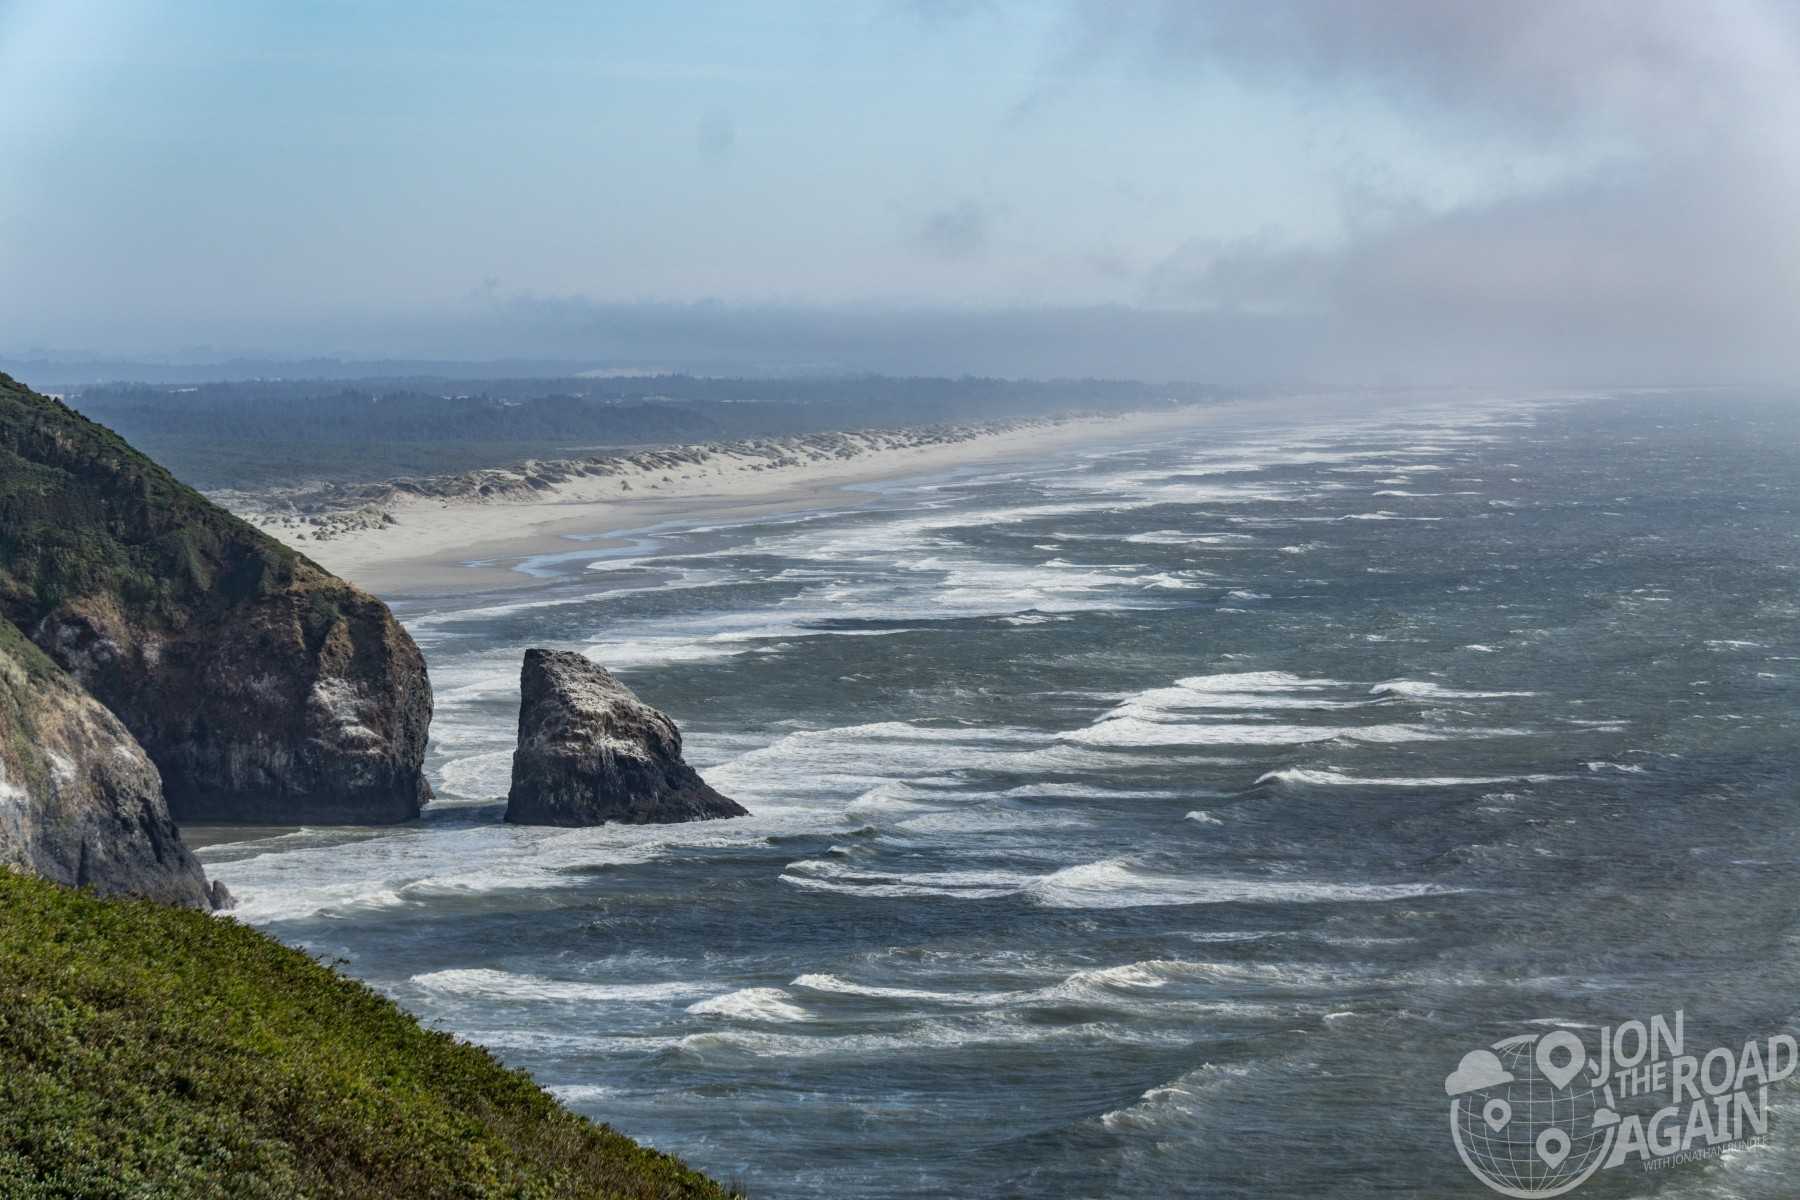 Oregon coastline / Oregon Dunes coastline